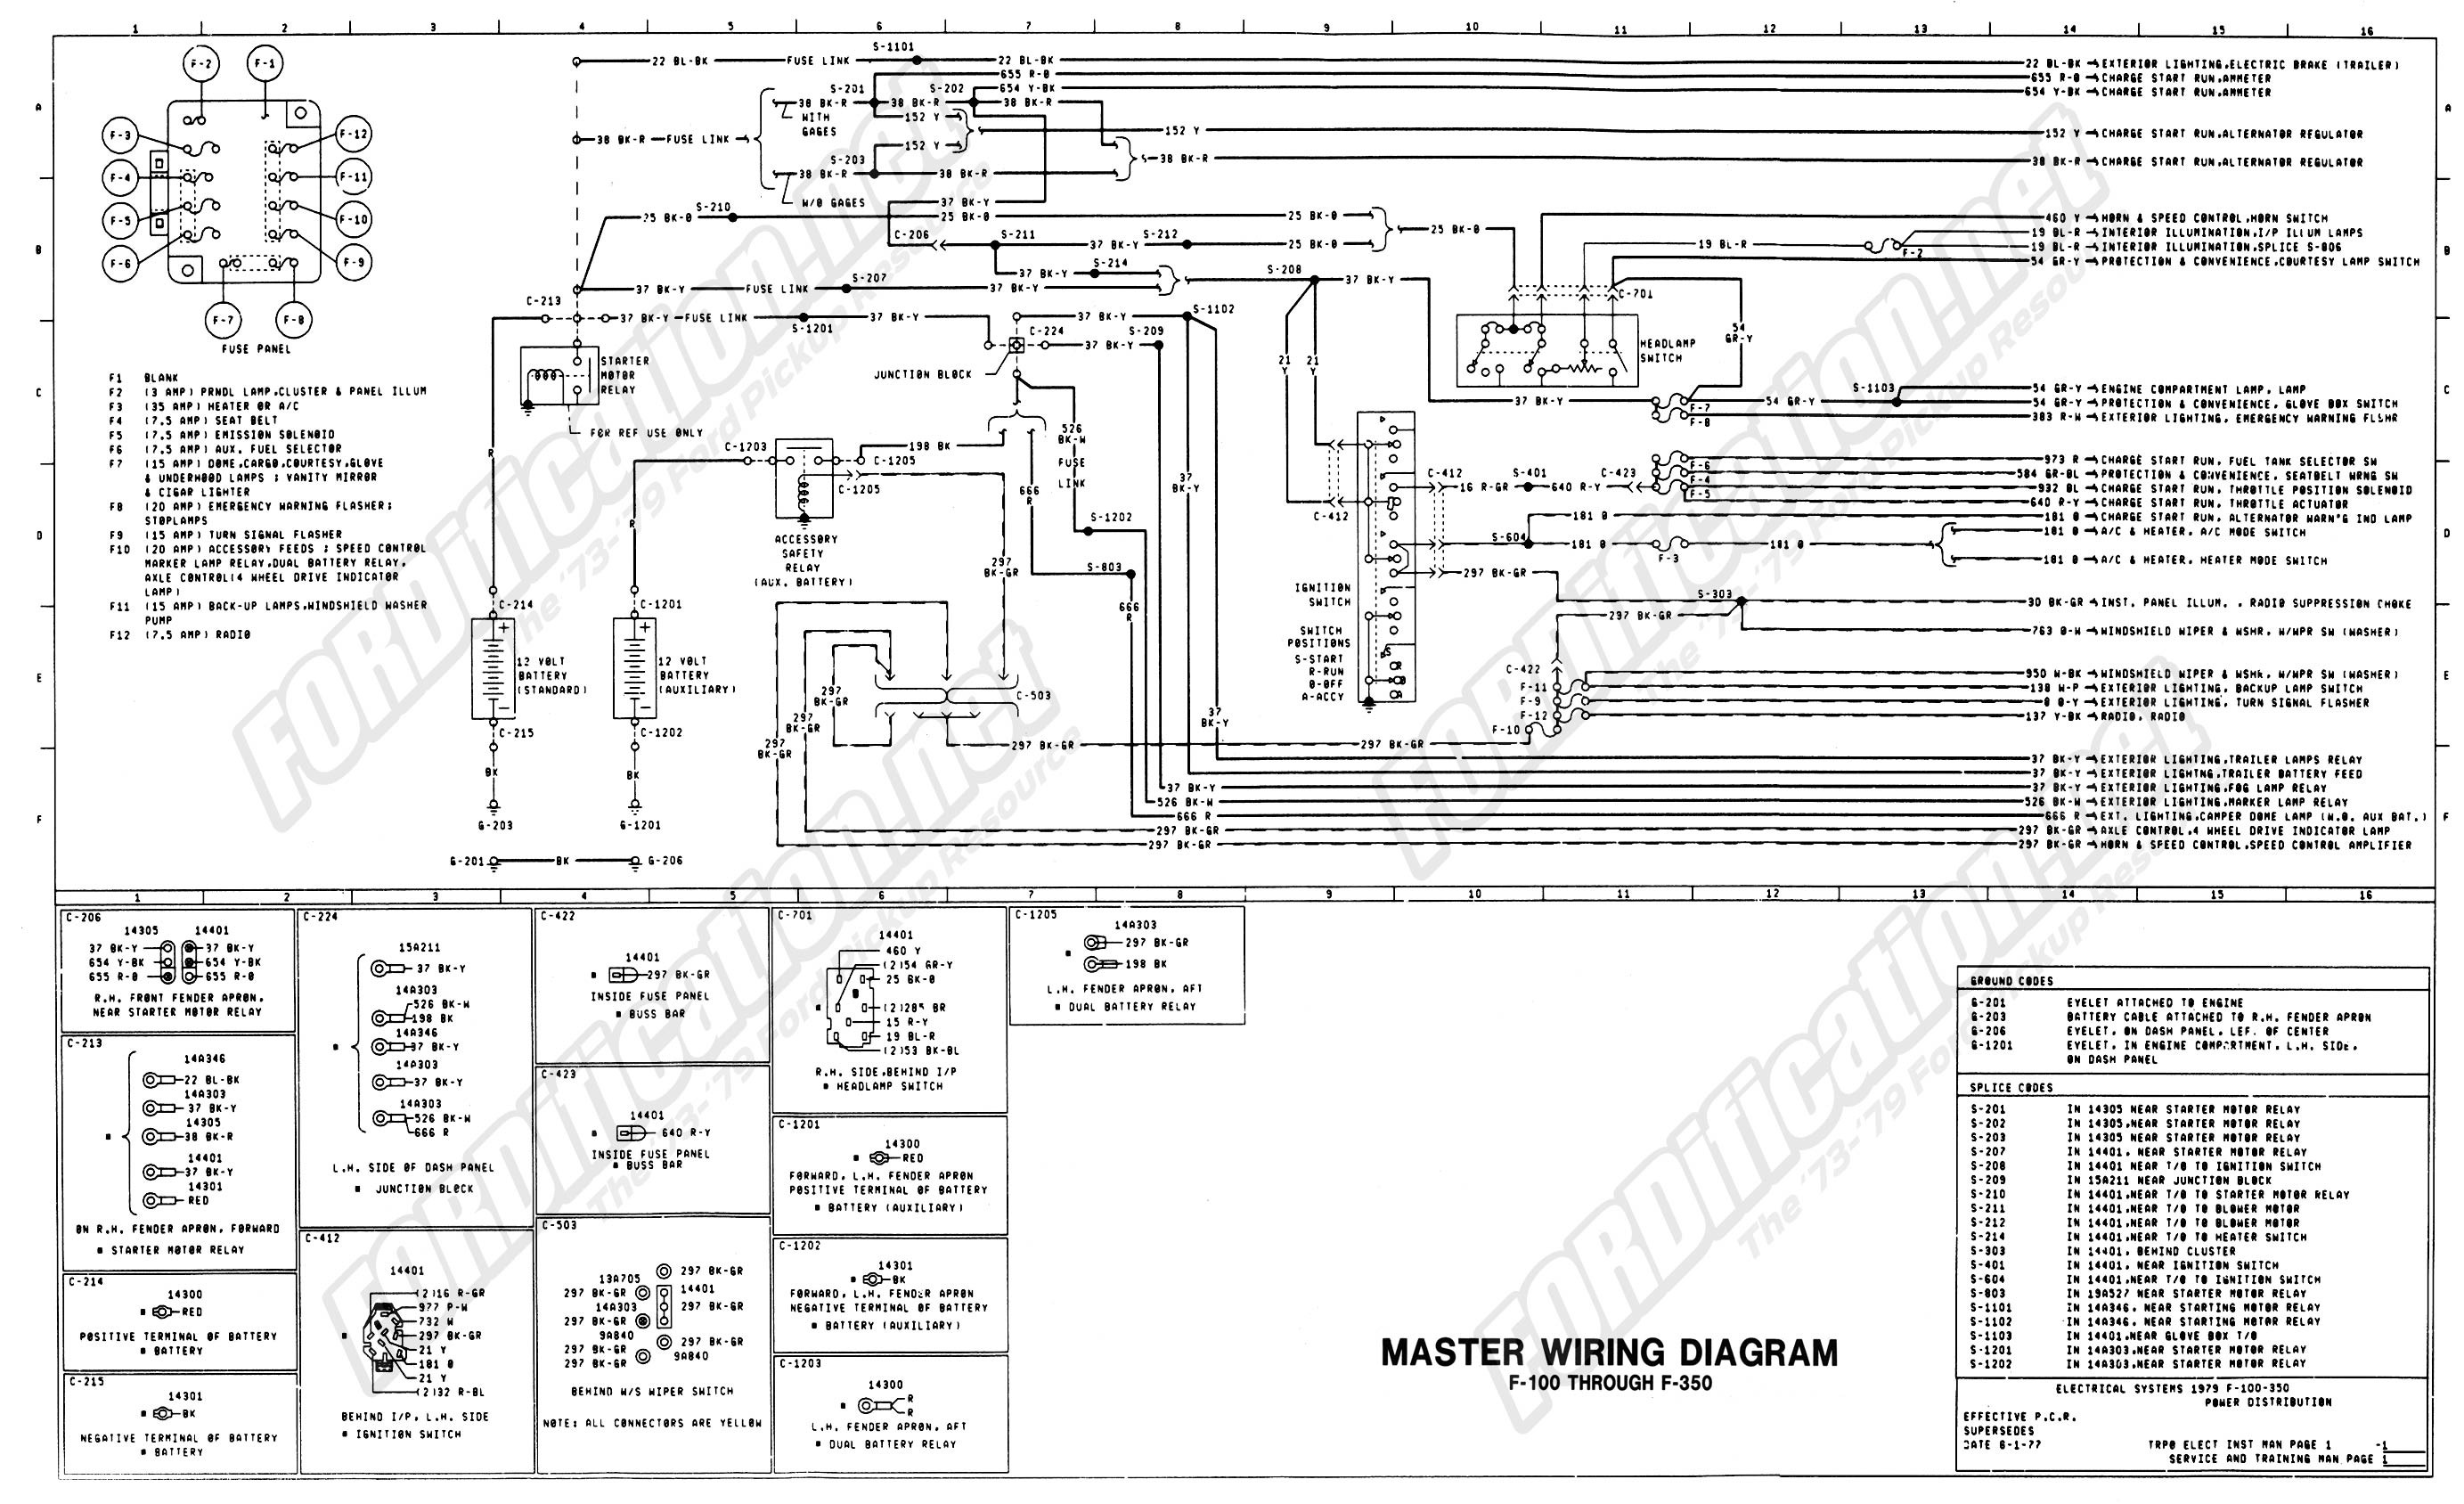 2007 ford Escape Engine Diagram 79 F150 solenoid Wiring Diagram ford Truck  Enthusiasts forums Of 2007